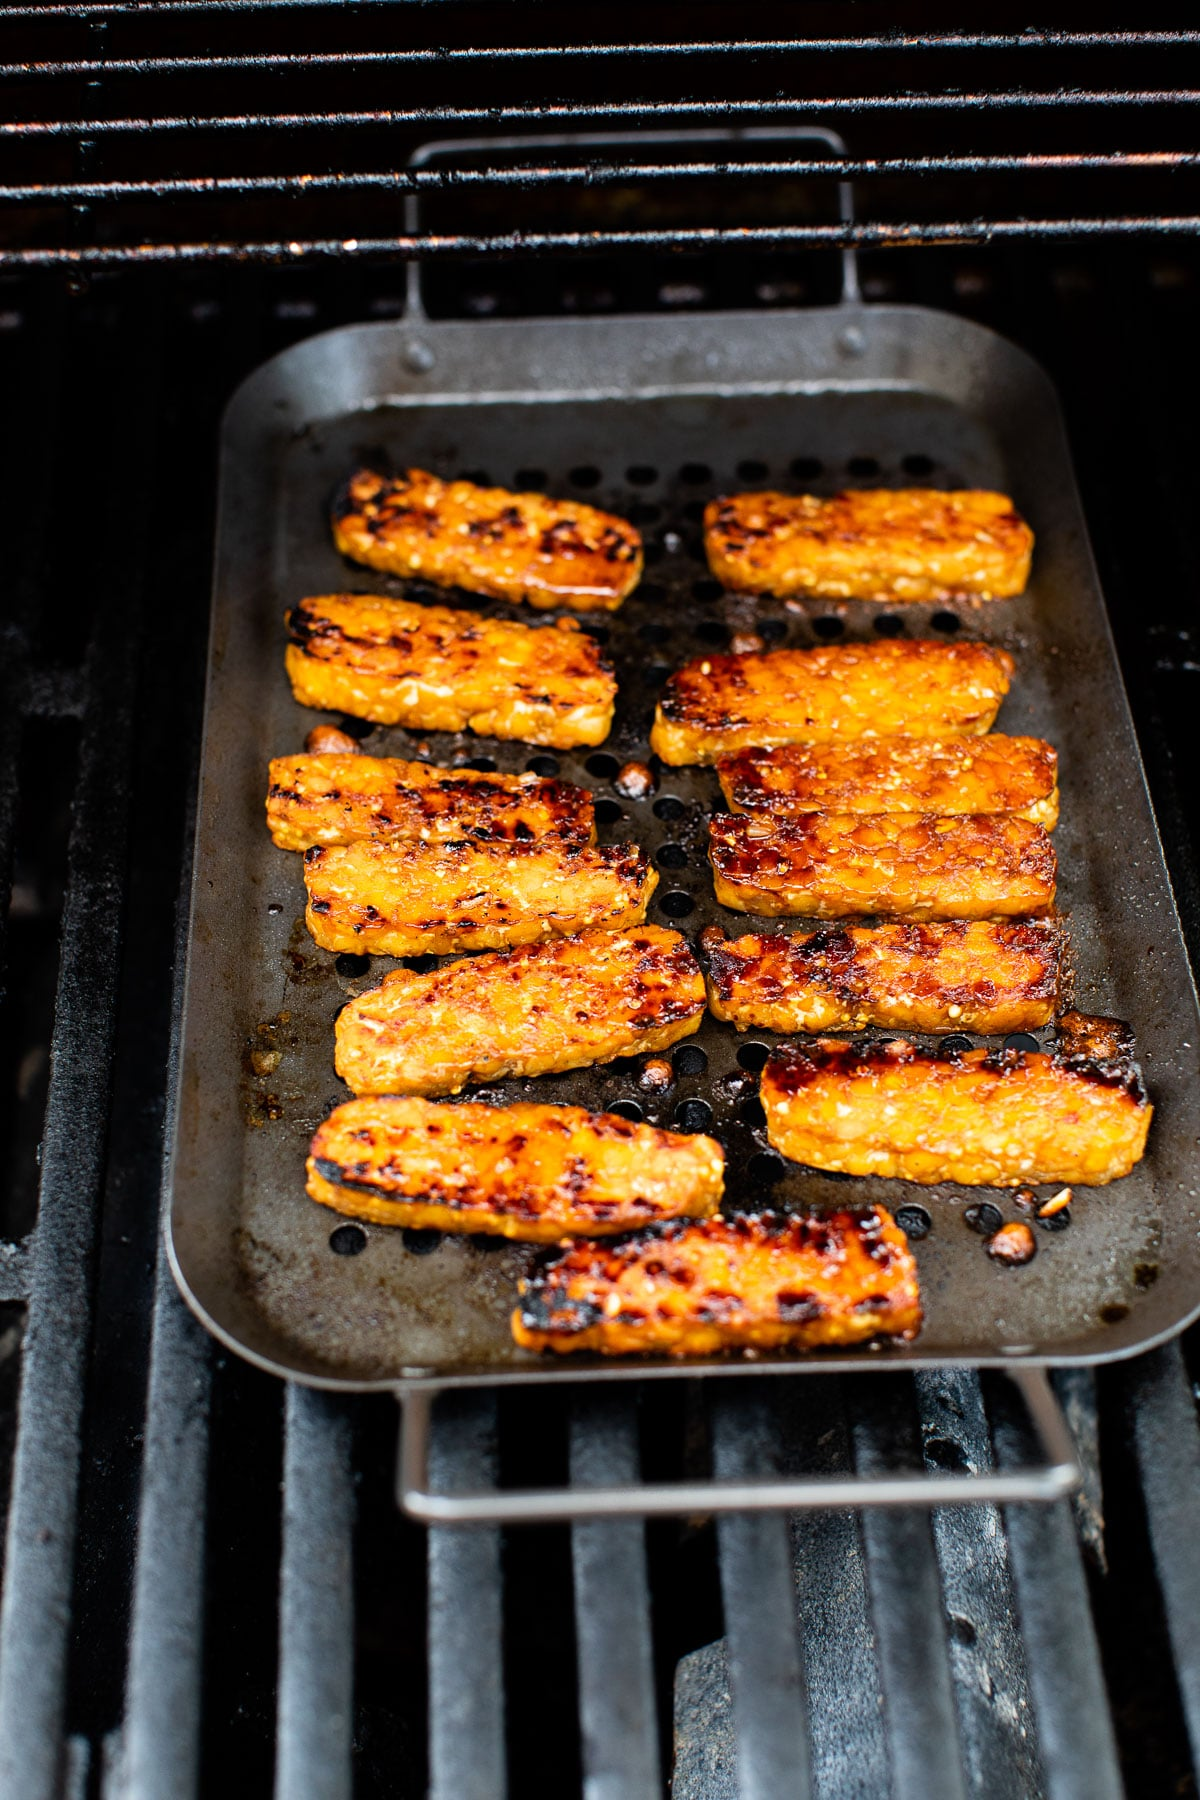 tempeh on a grill grate on the grill